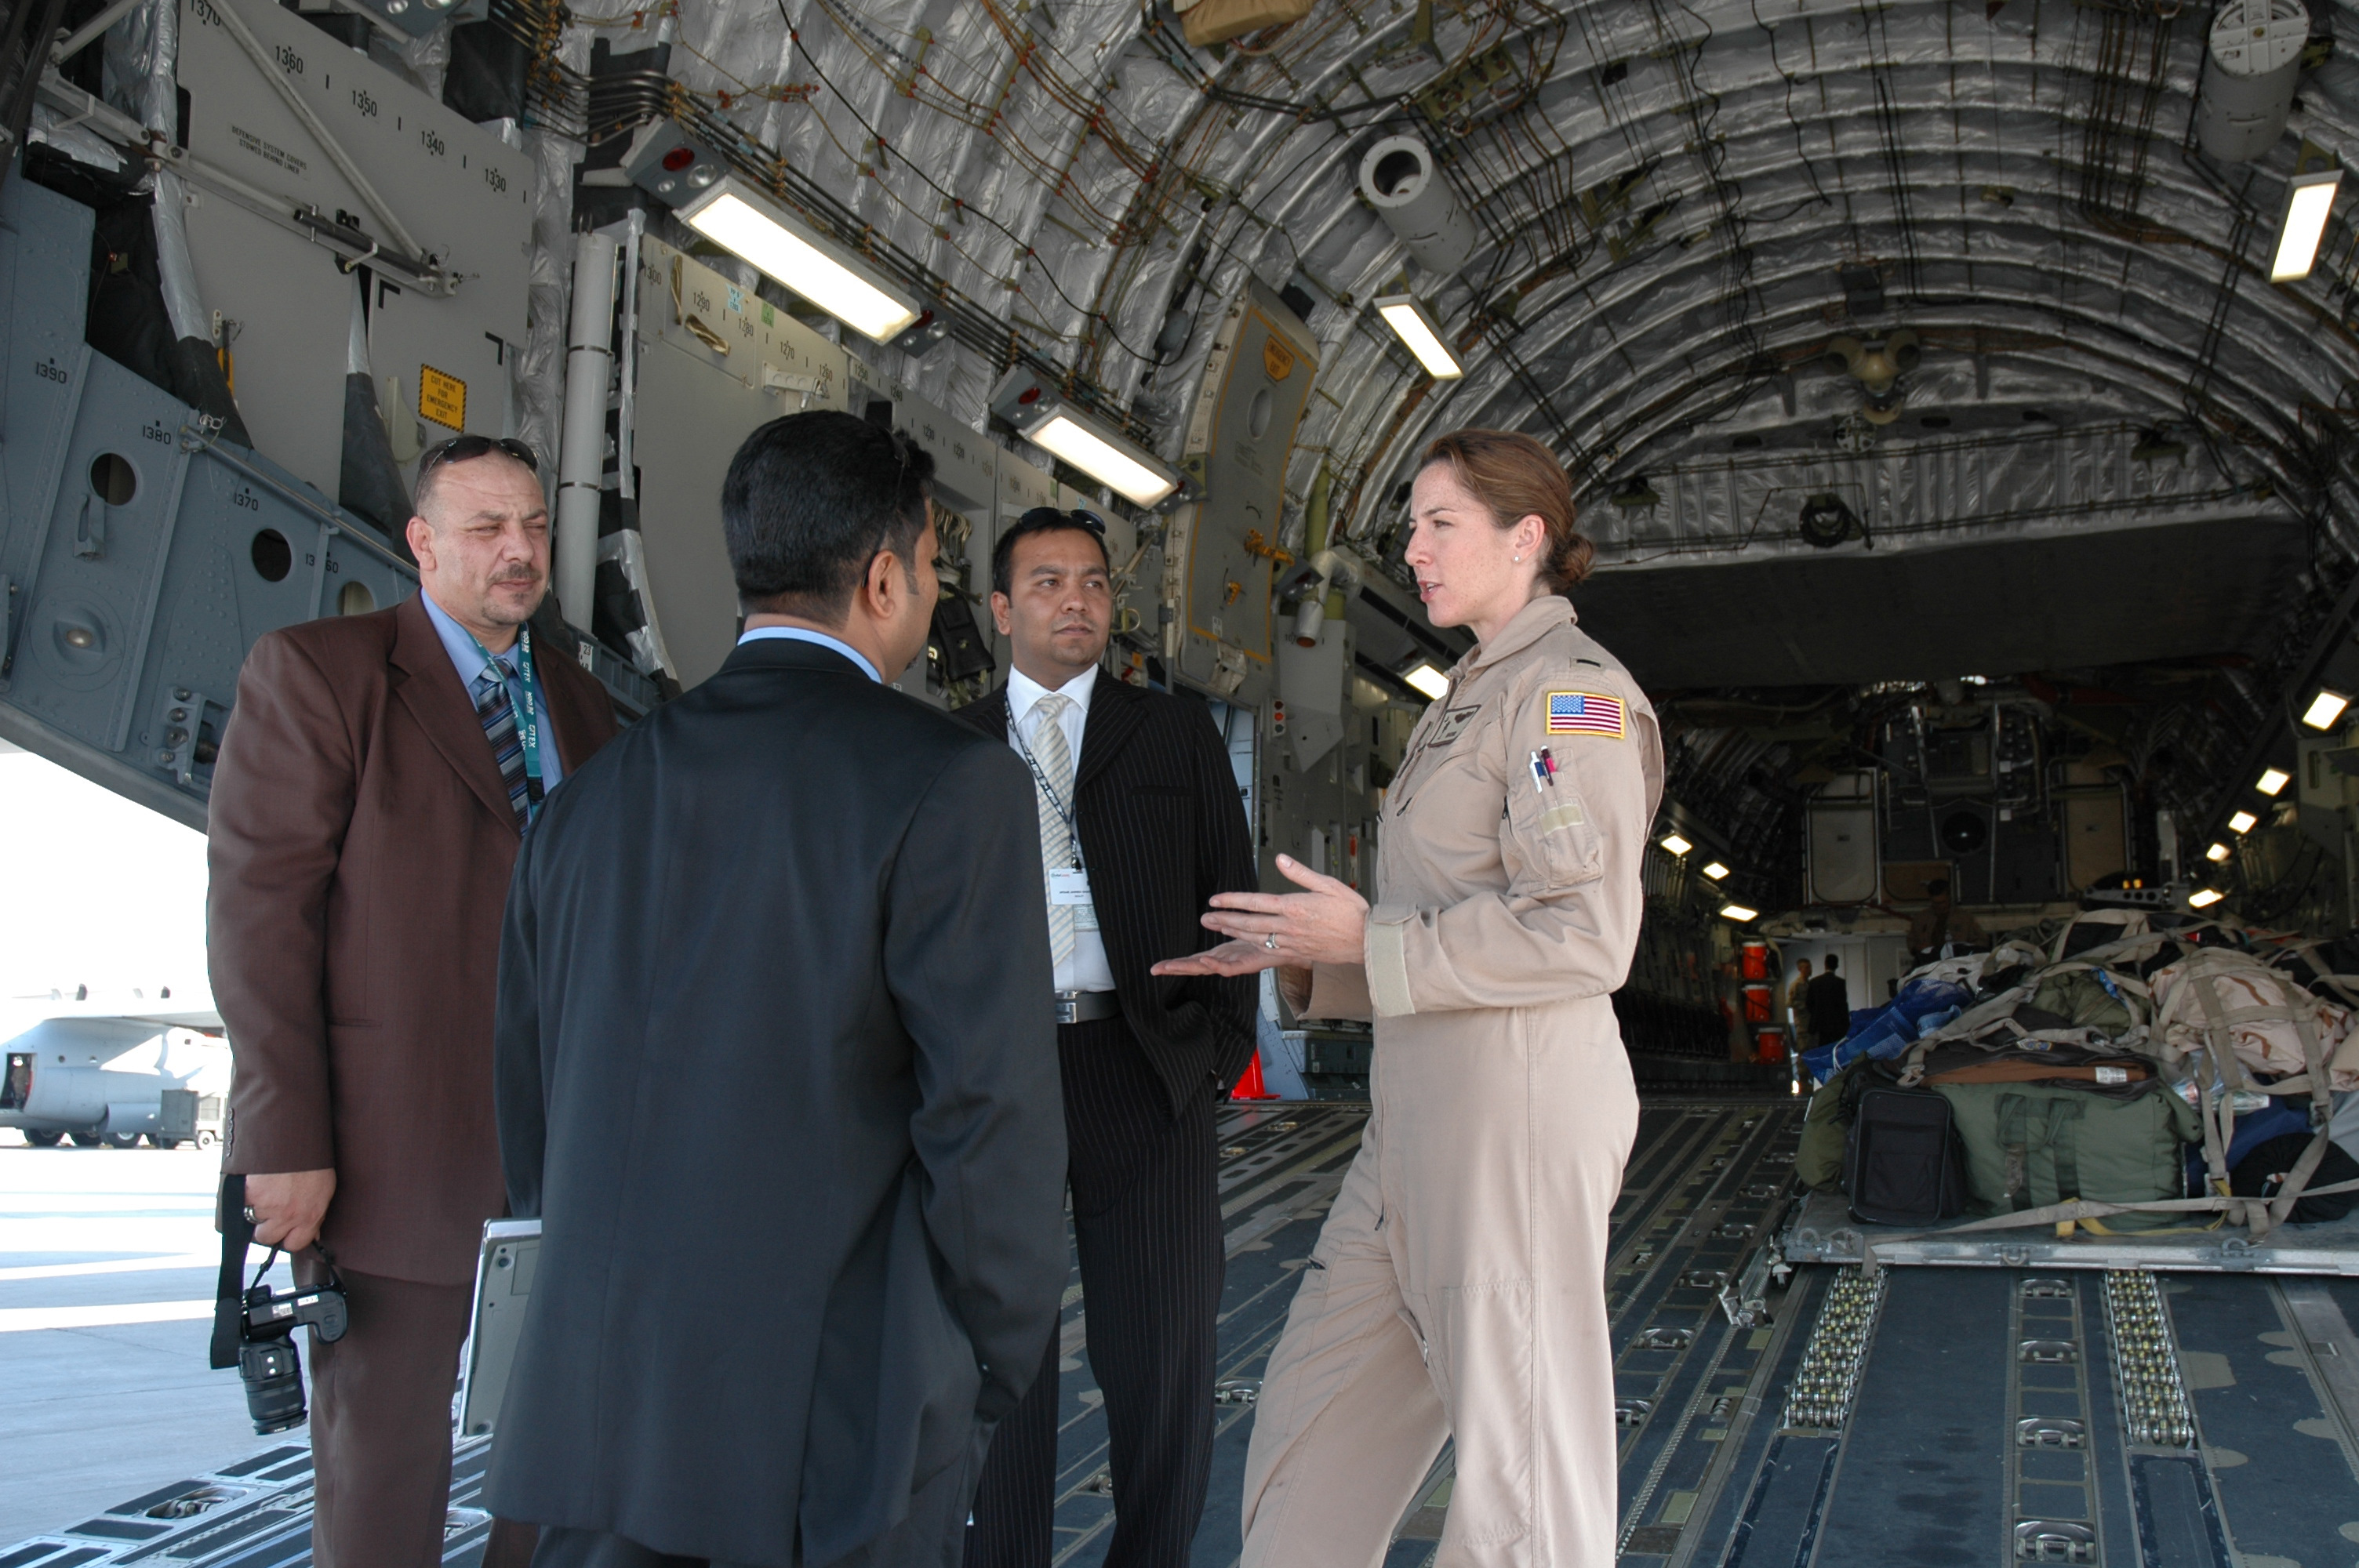 charleston afb buddhist single men Usaf annual yearbook (2010) 5, c-17) y 437th airlift wing, charleston afb, s afb, ohio, is the air force's single intelligence analysis center and.